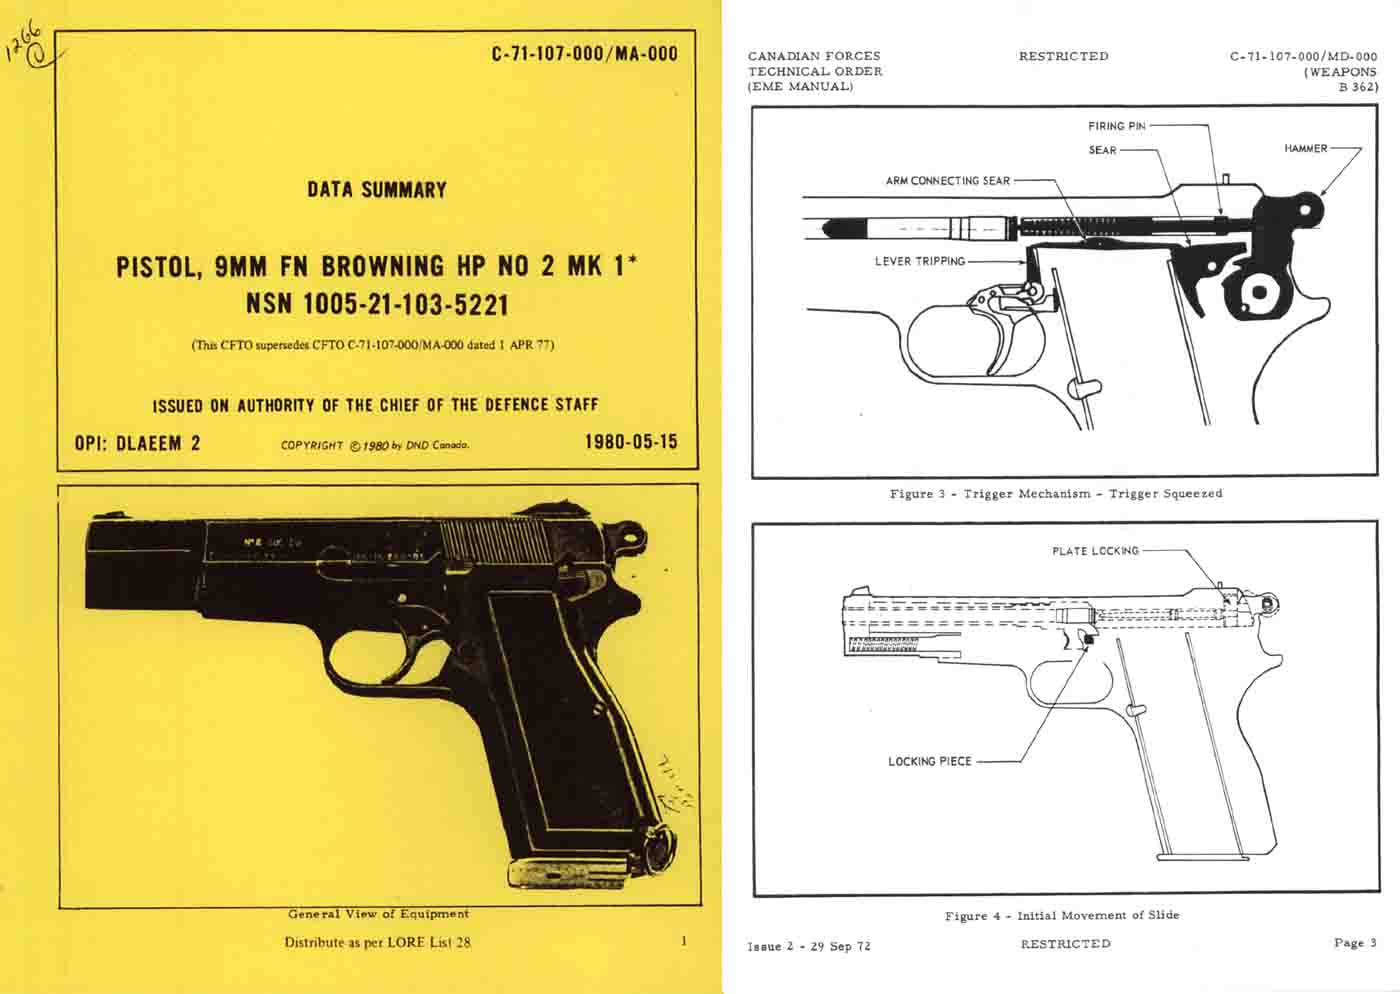 Browning 1980 FN 9mm No. 2, Mark 1 Manual- Canadian